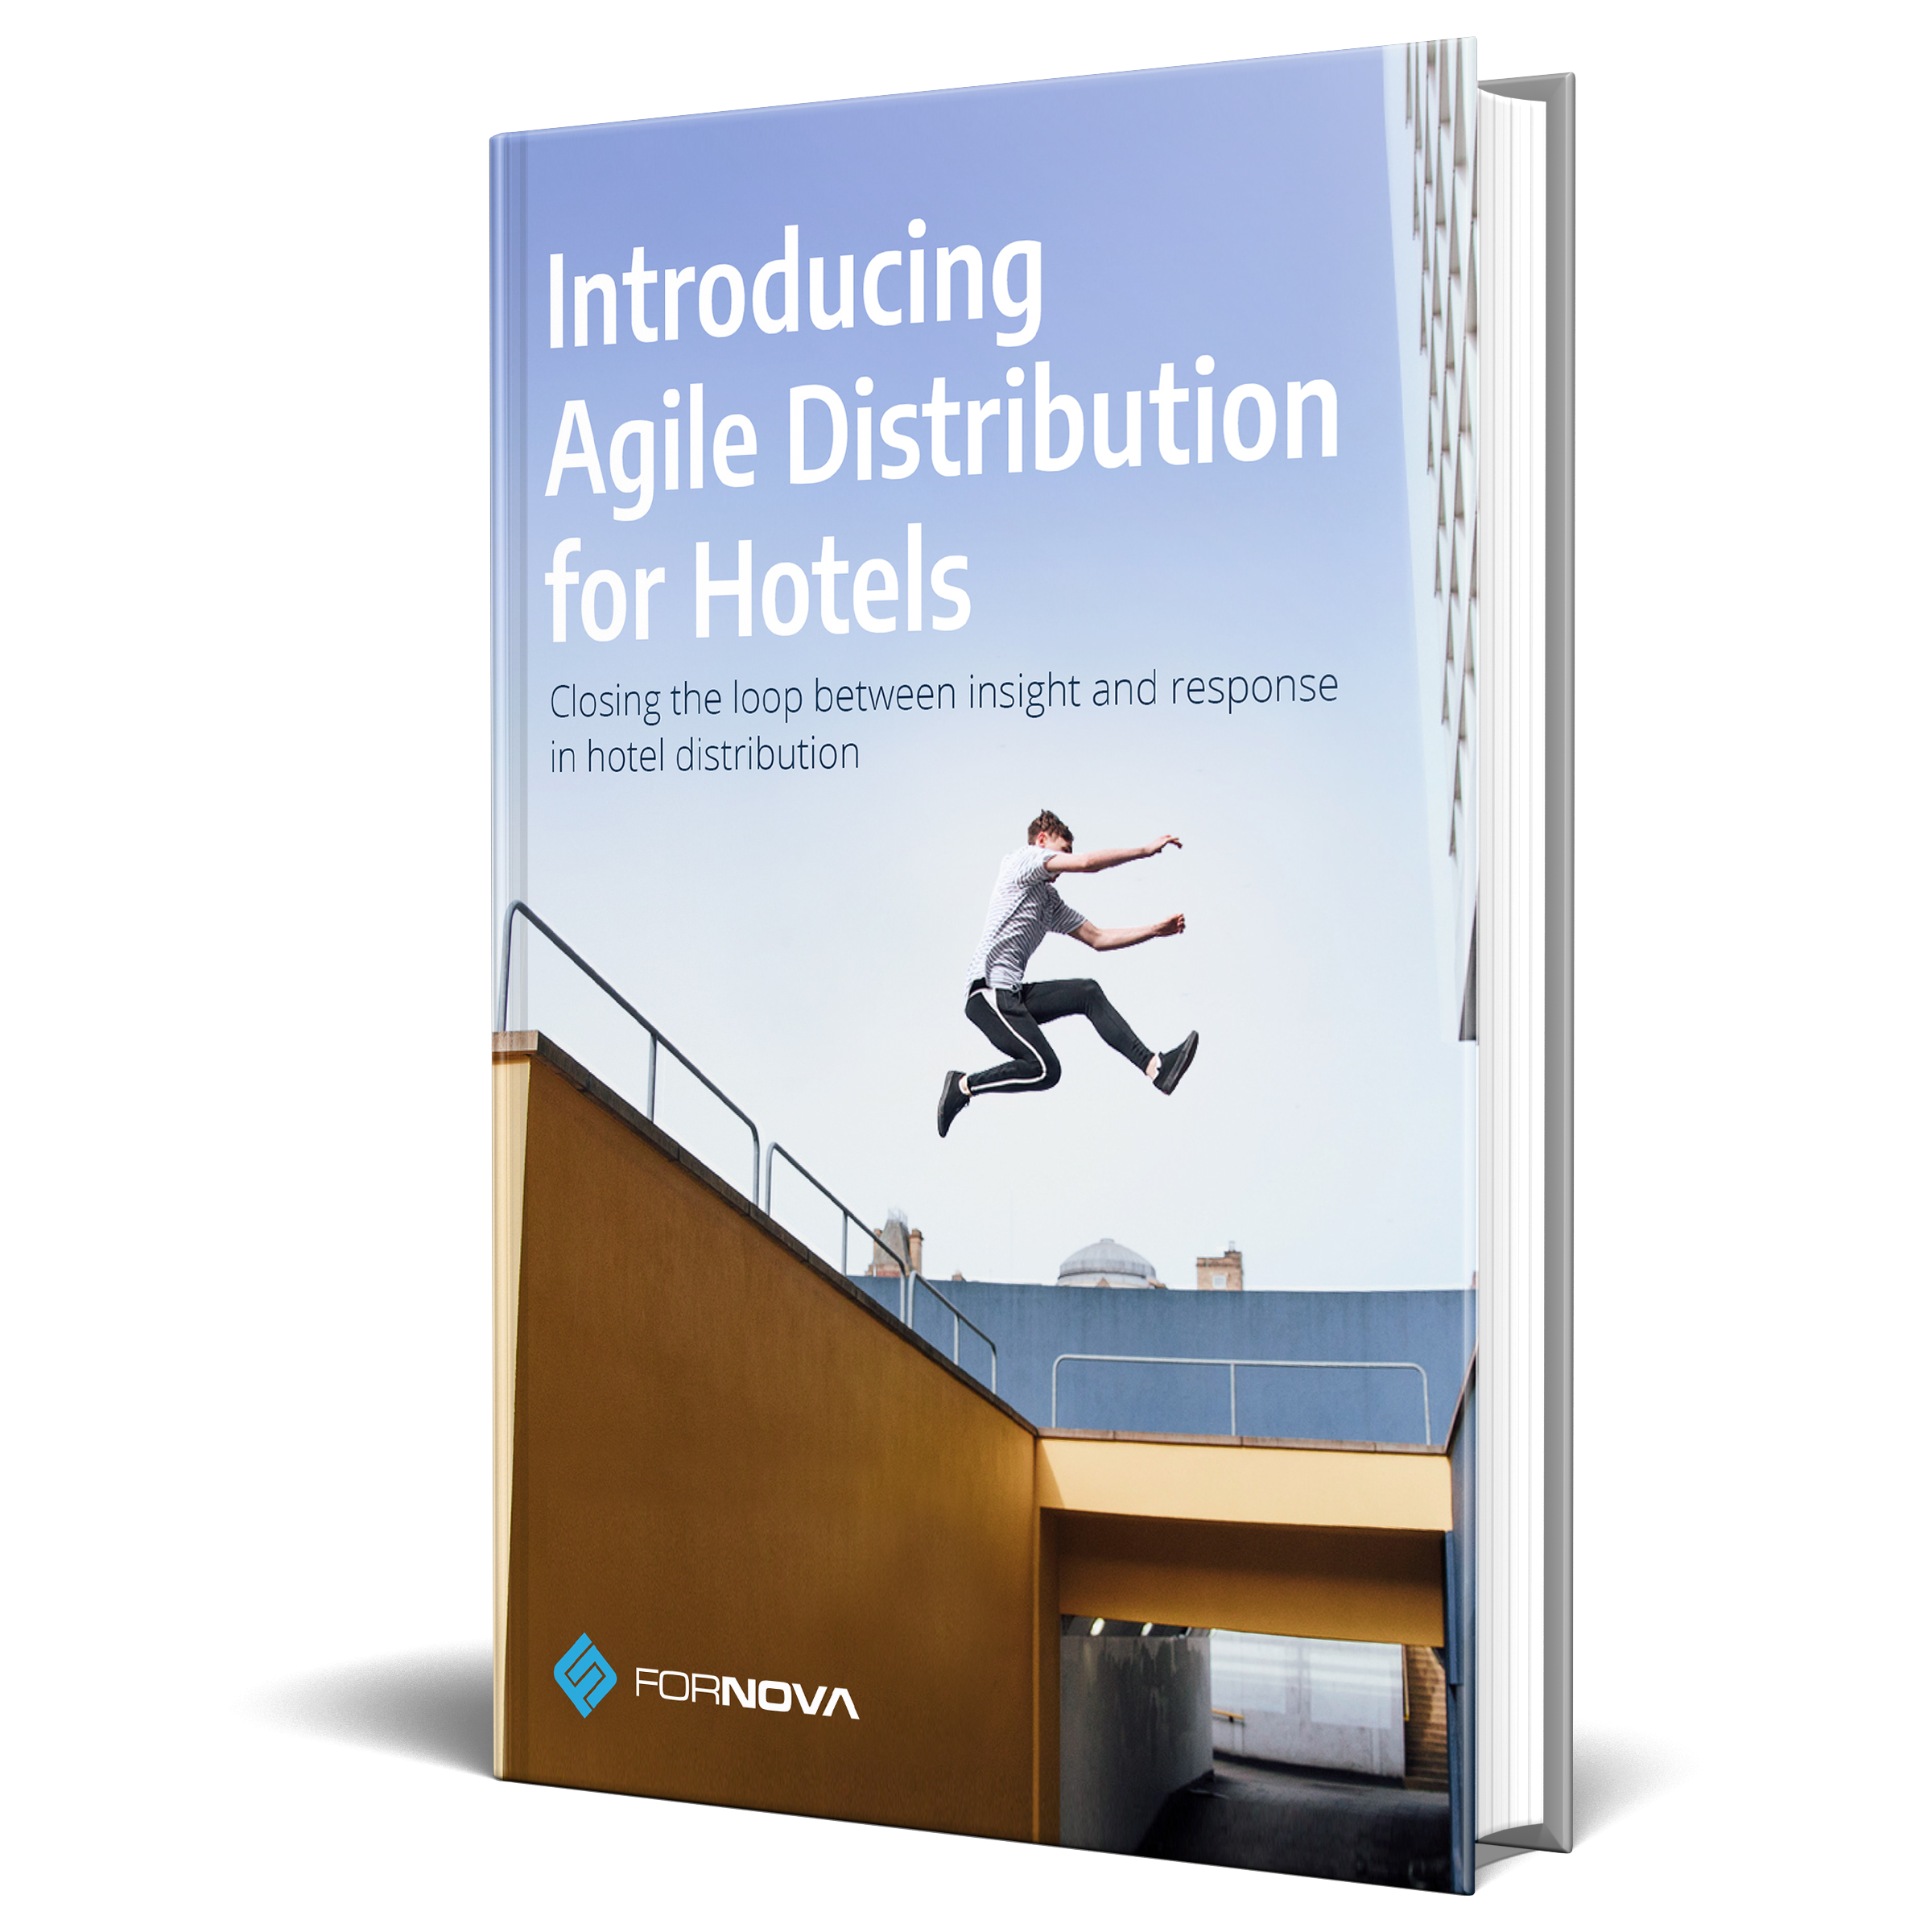 Introducing Agile distribution for hotels: what's in our new eBook?